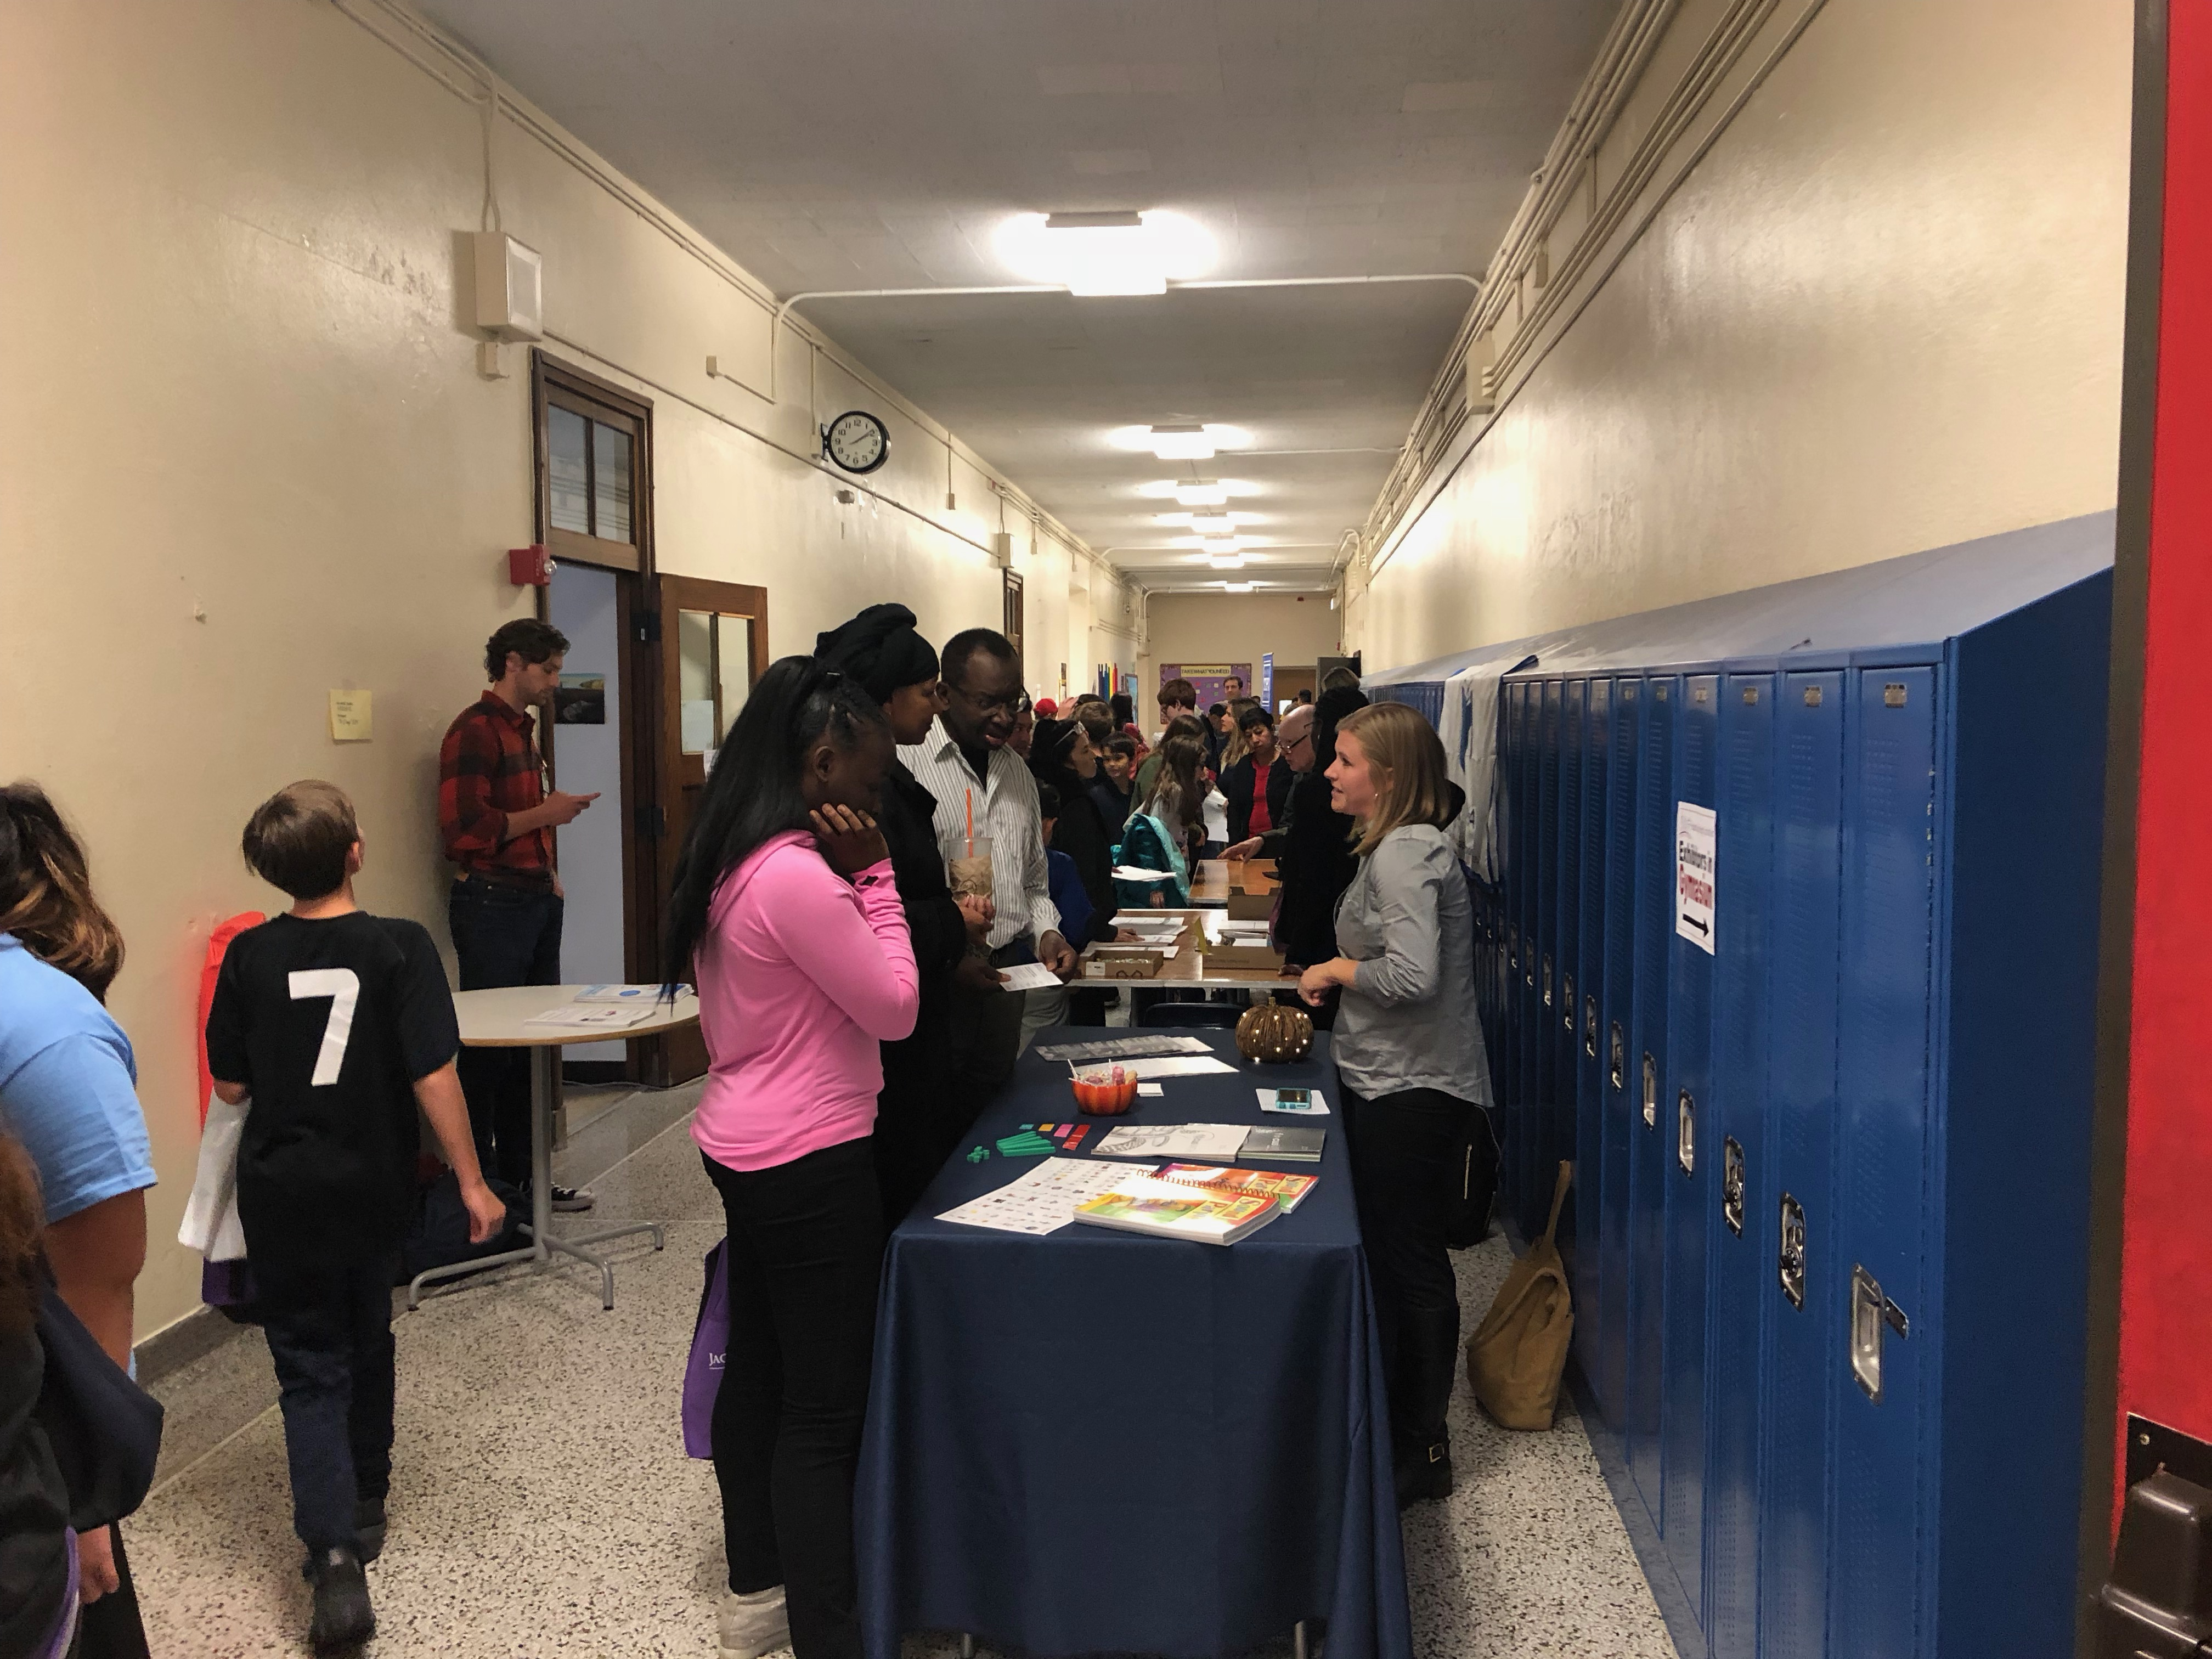 Students speak with school representatives in the hallway of Disney II Magnet High School during a high school admissions fair.